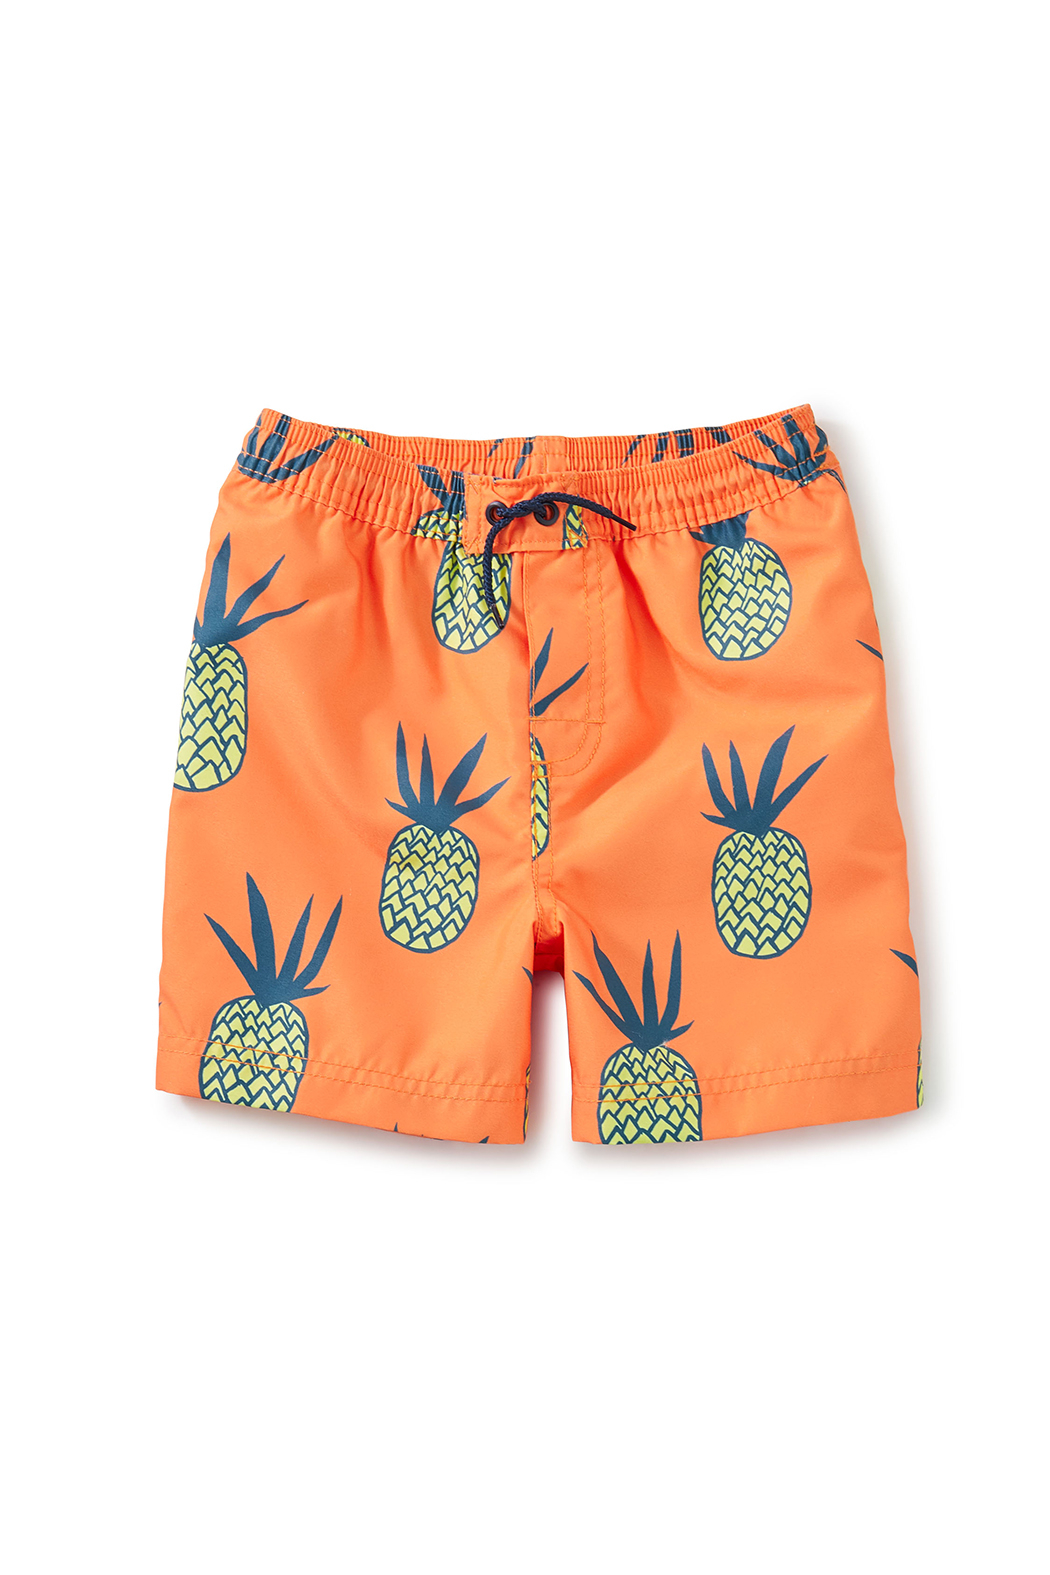 Tea Collection  Mid-Length Swim Trunks - Golden Pinas - Main Image